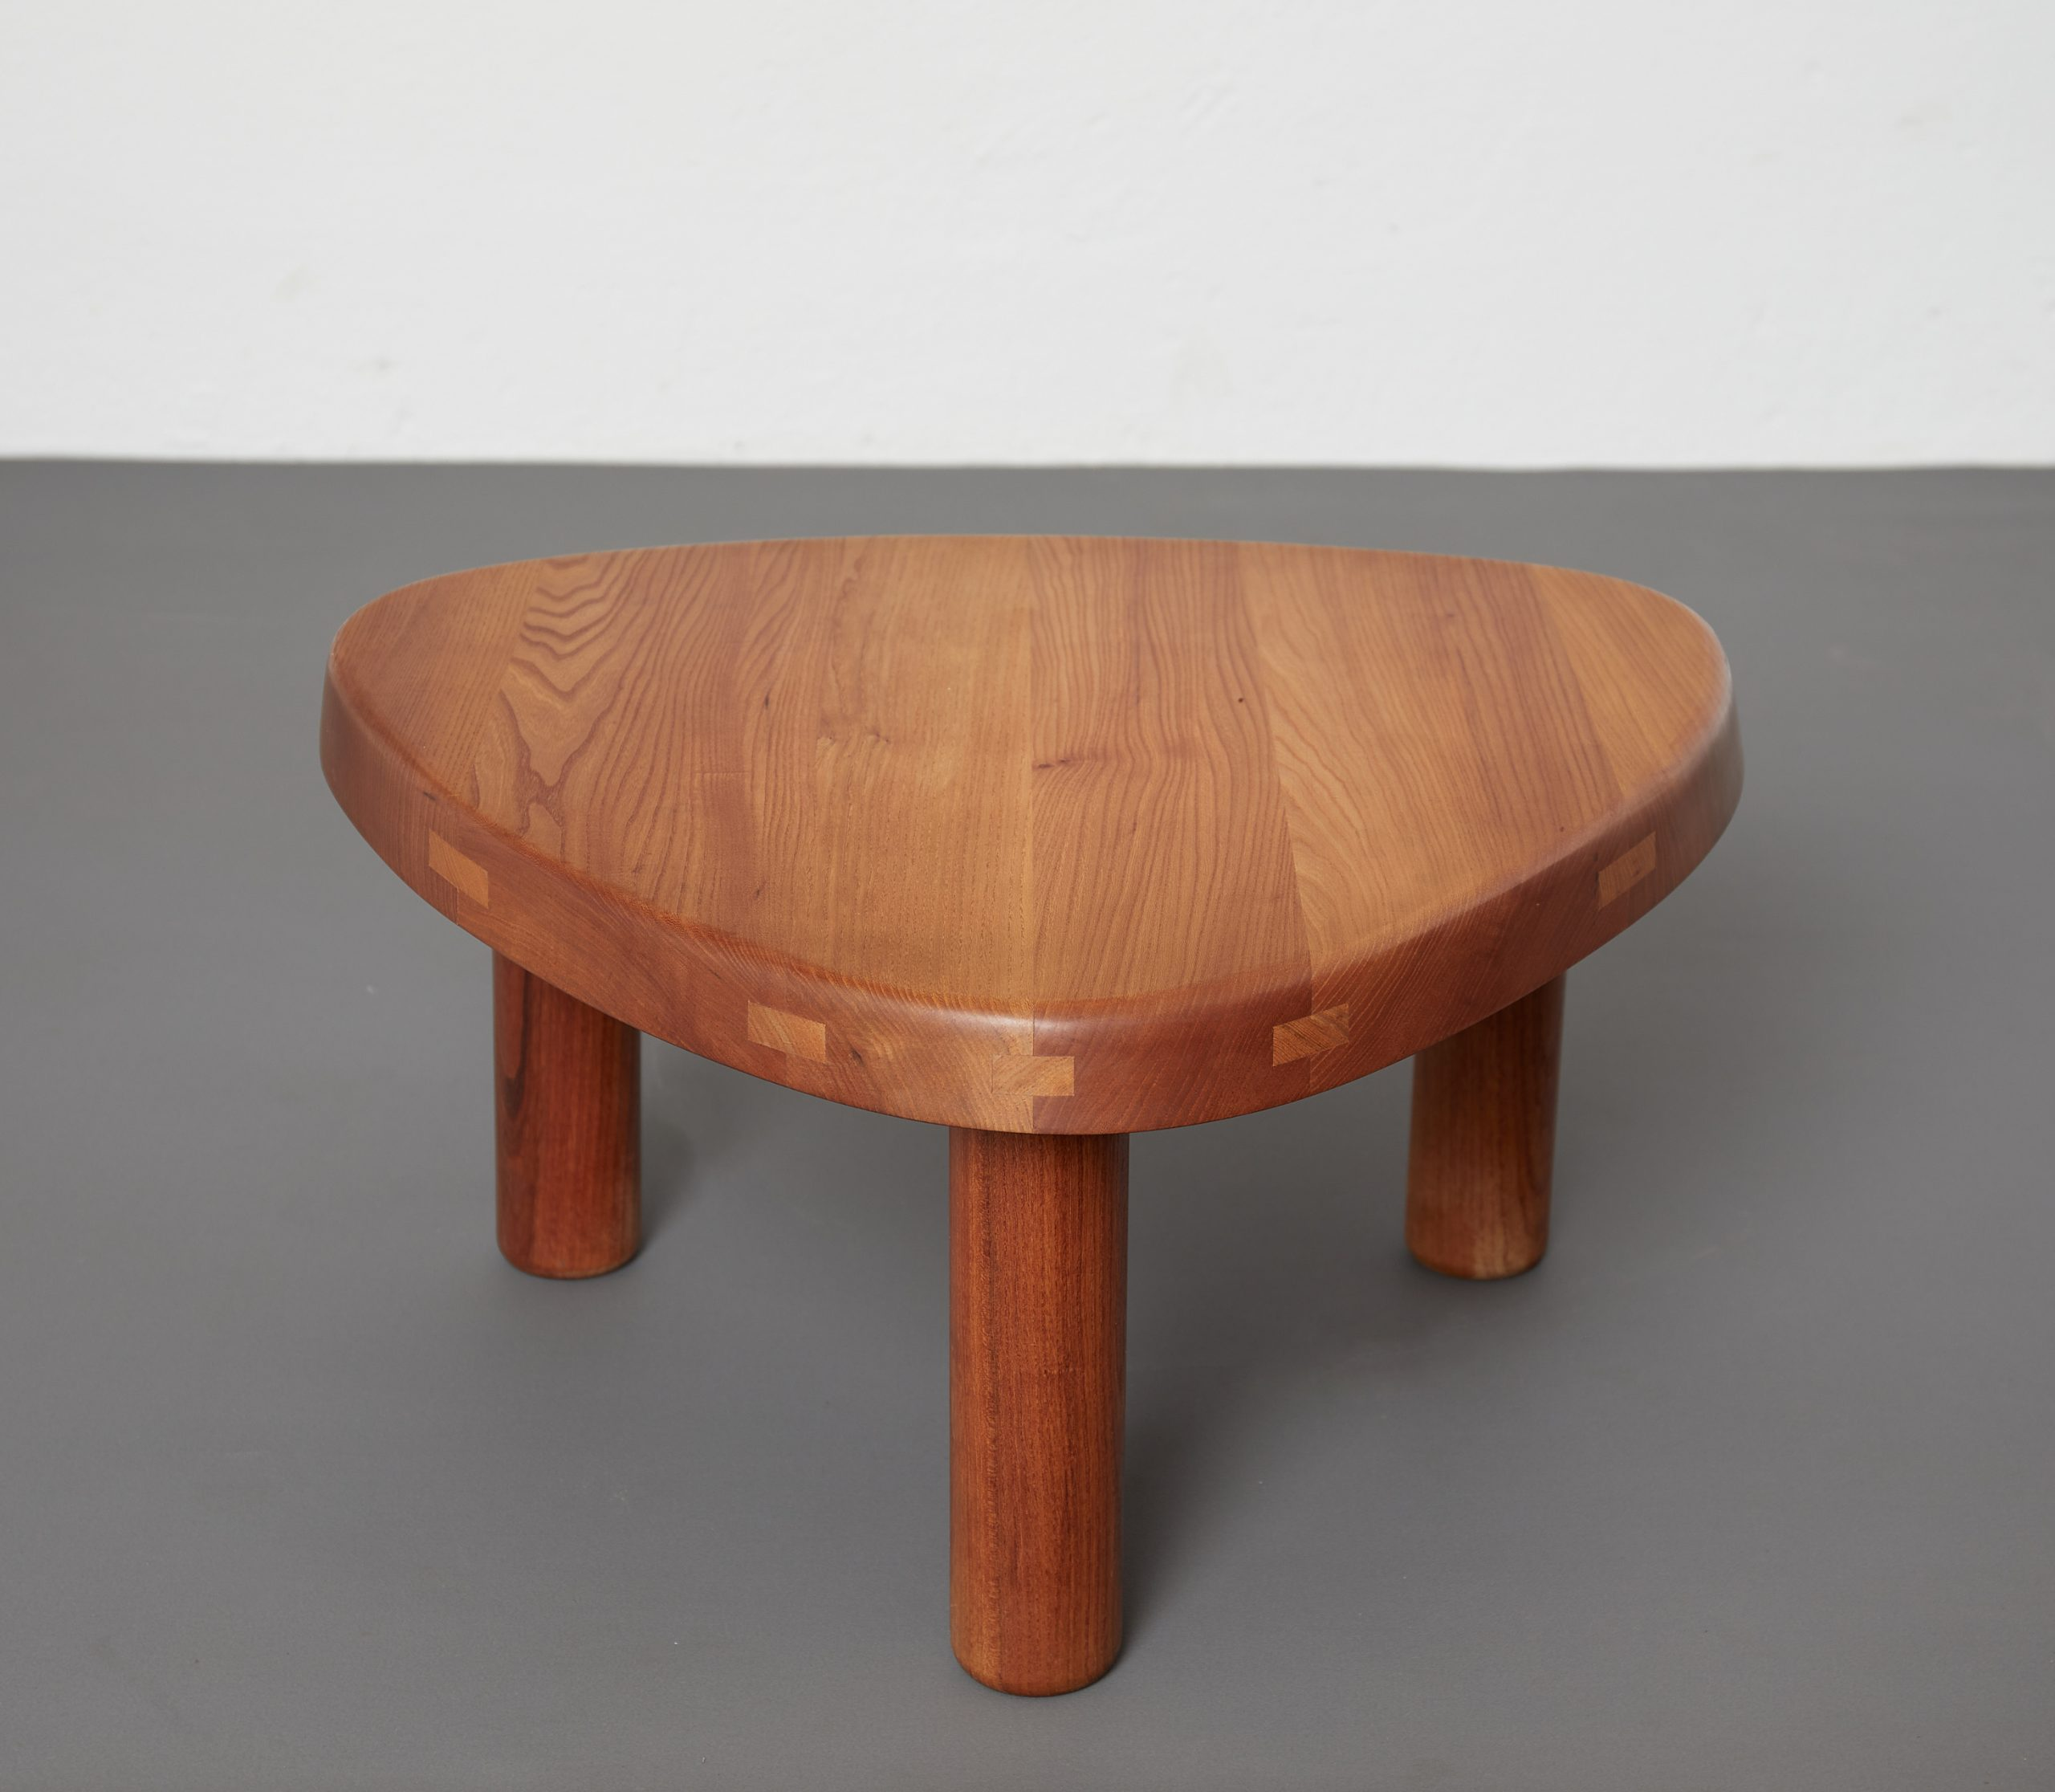 t23-table-by-pierre-chapo-image-09